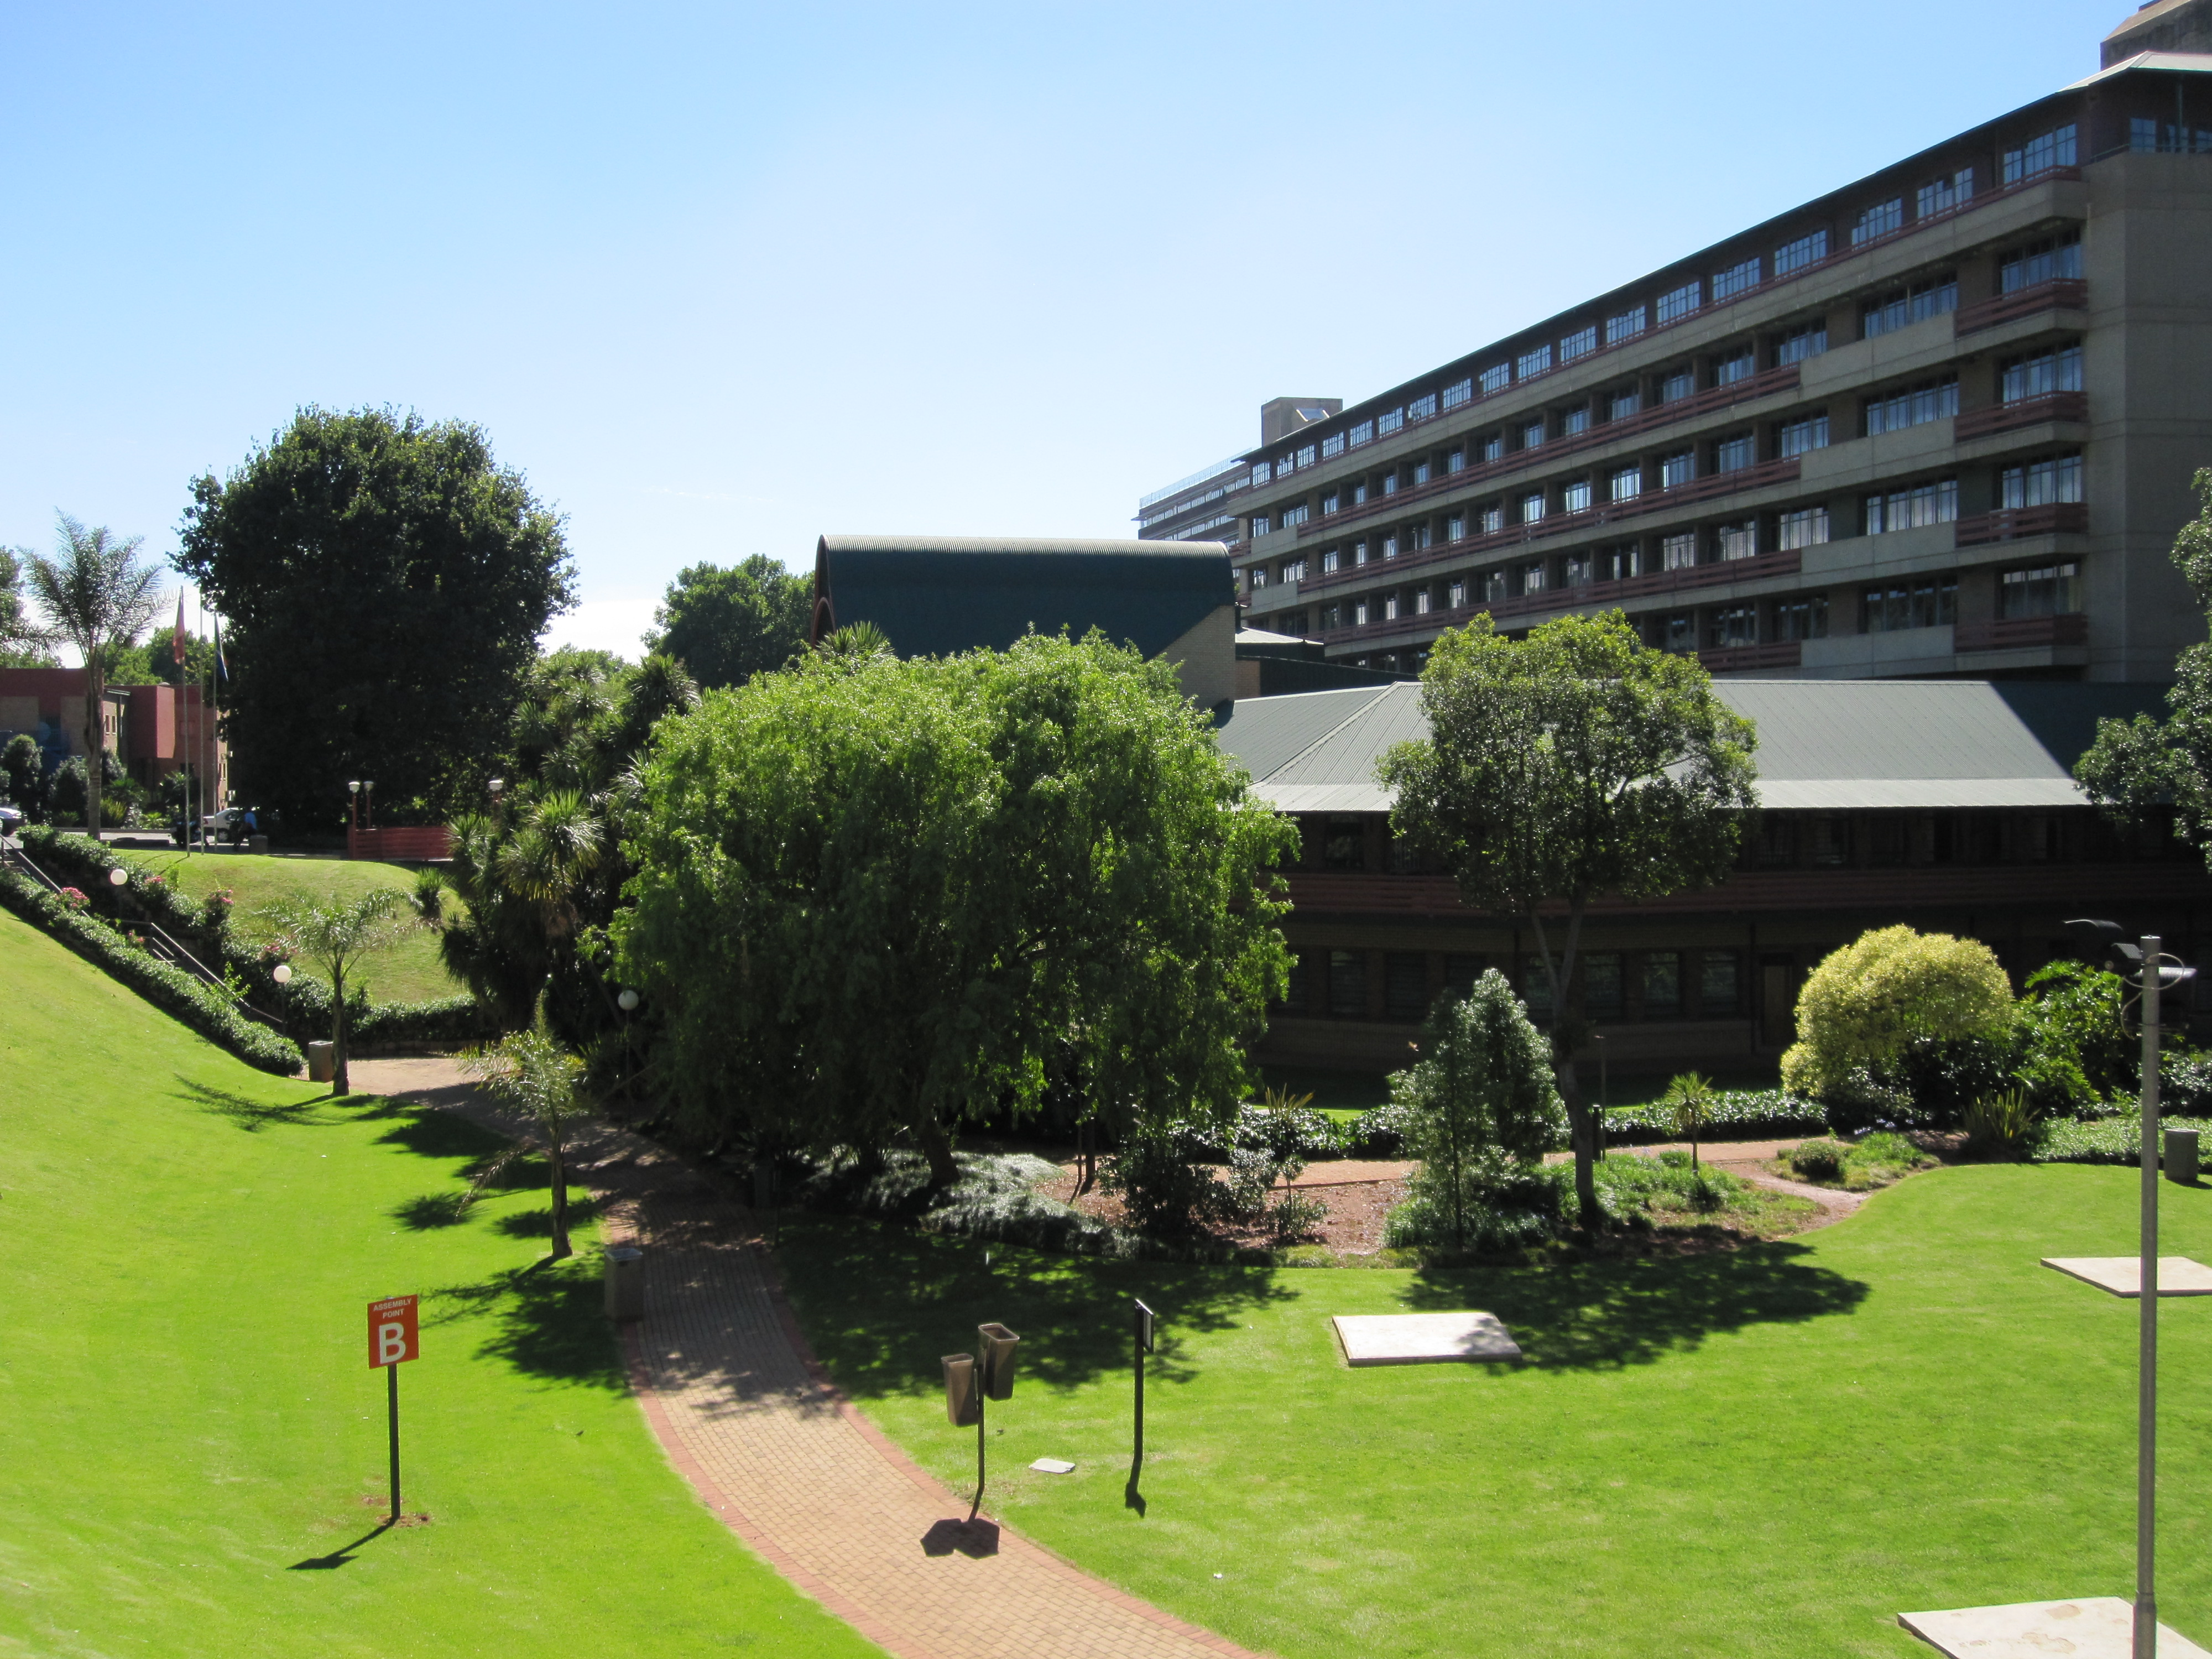 Uj online application closing date in Auckland